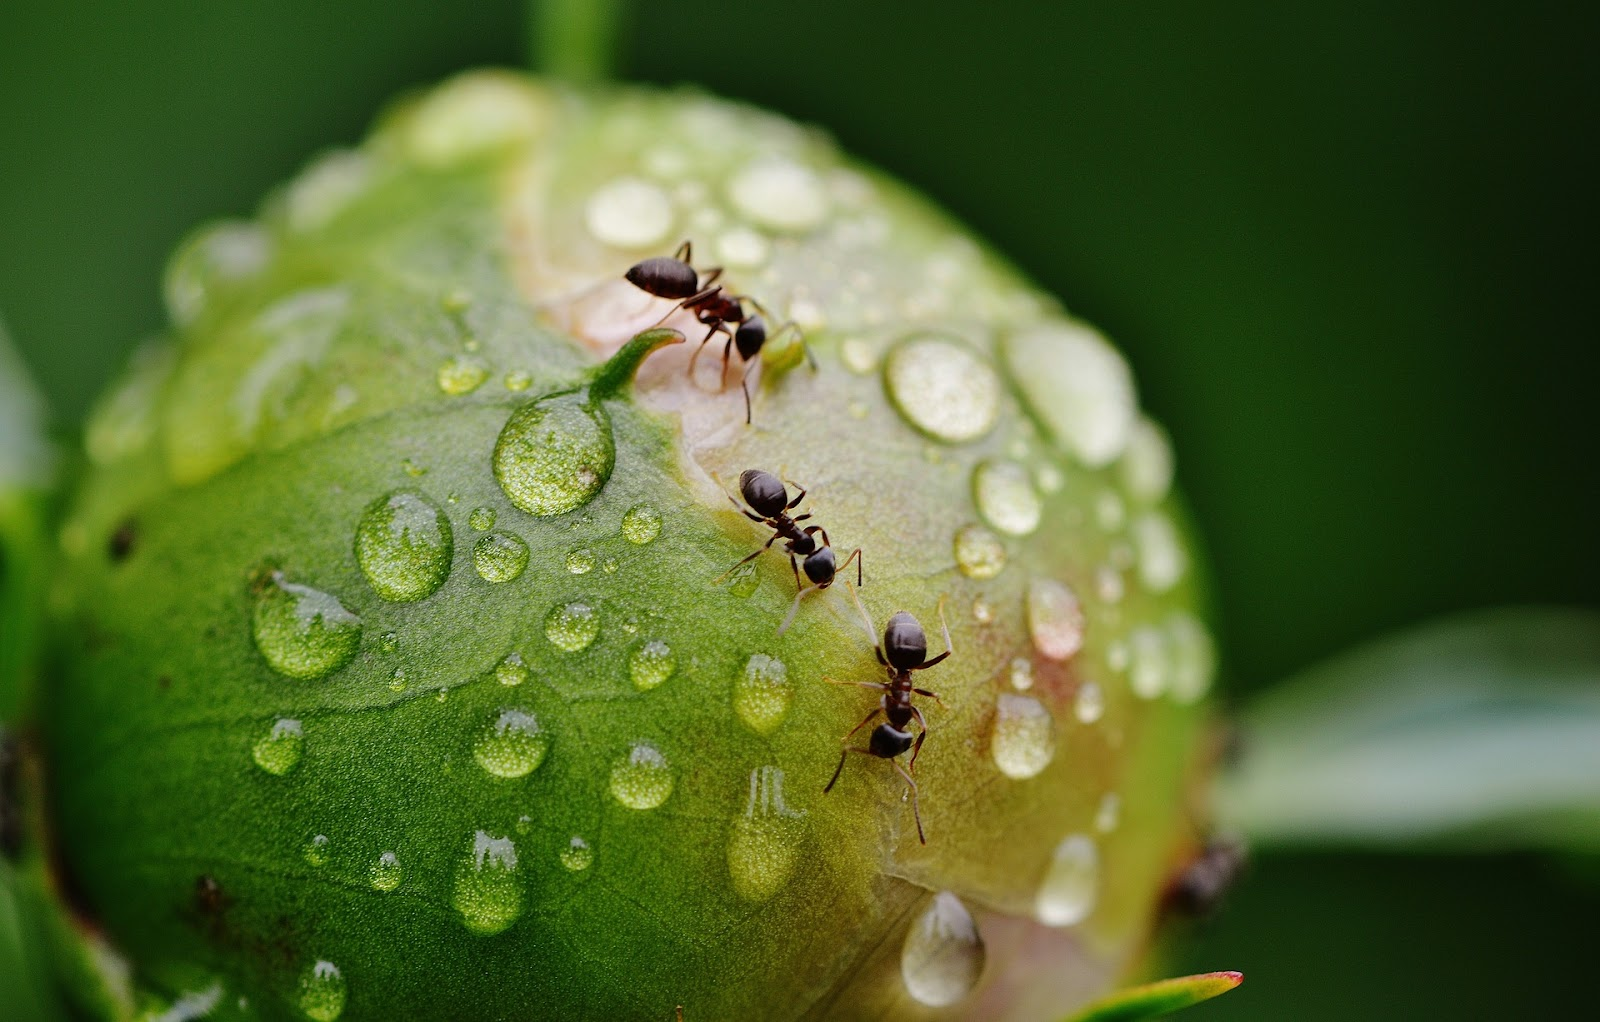 Ants climbing over a plant